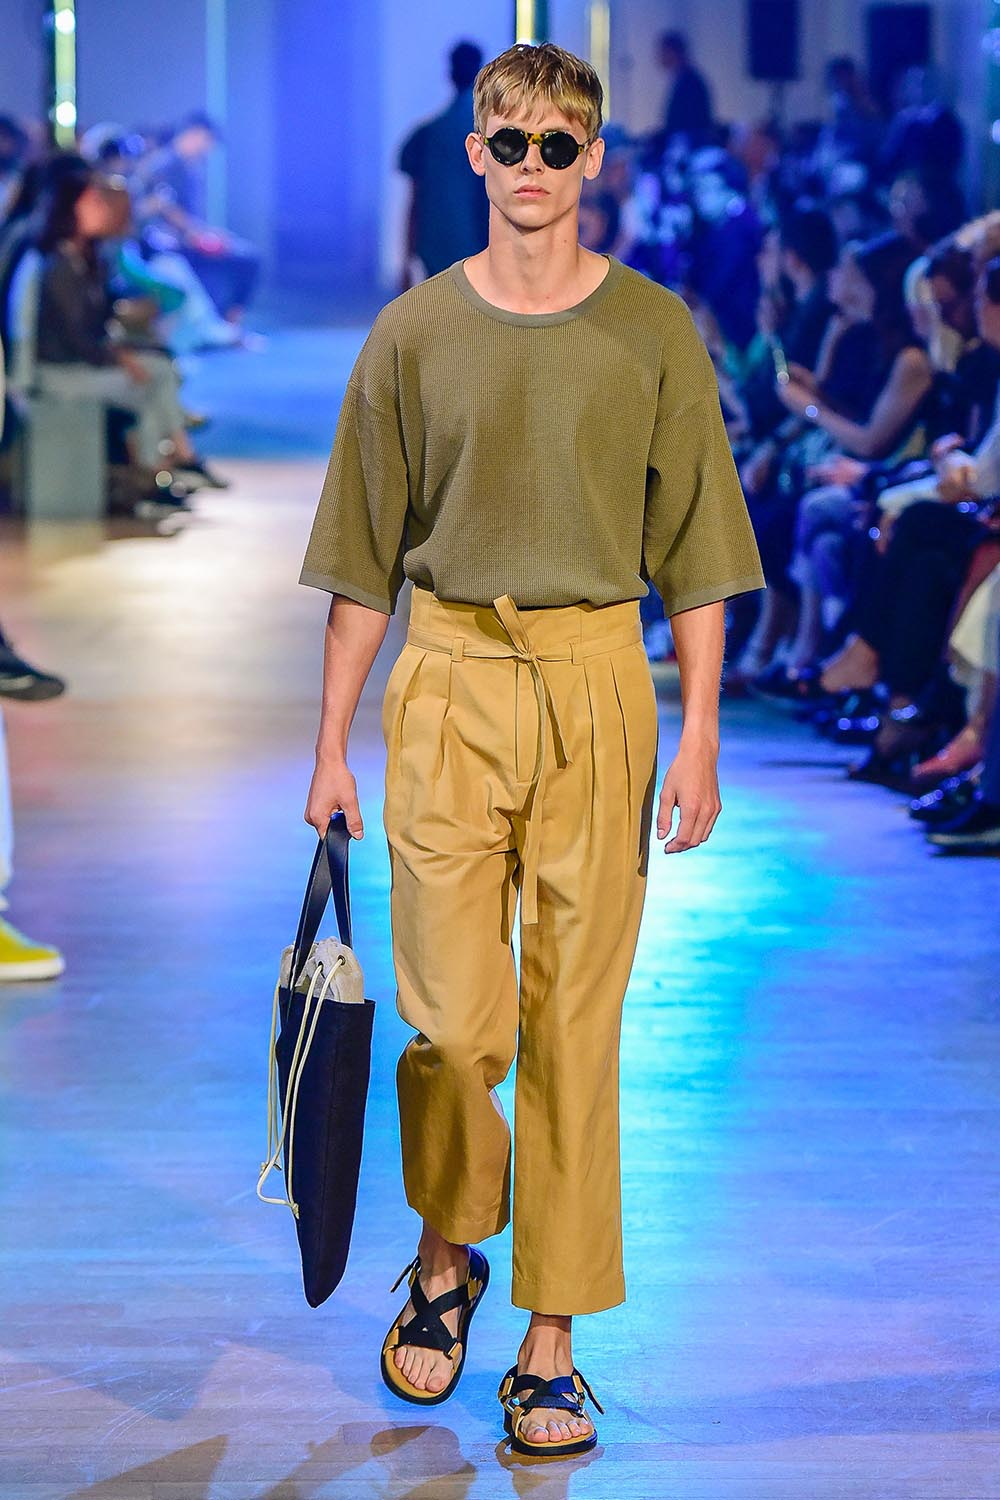 Cerruti 1881 Paris Fashion Week Men's SS19 - Sagaboi - Look 10